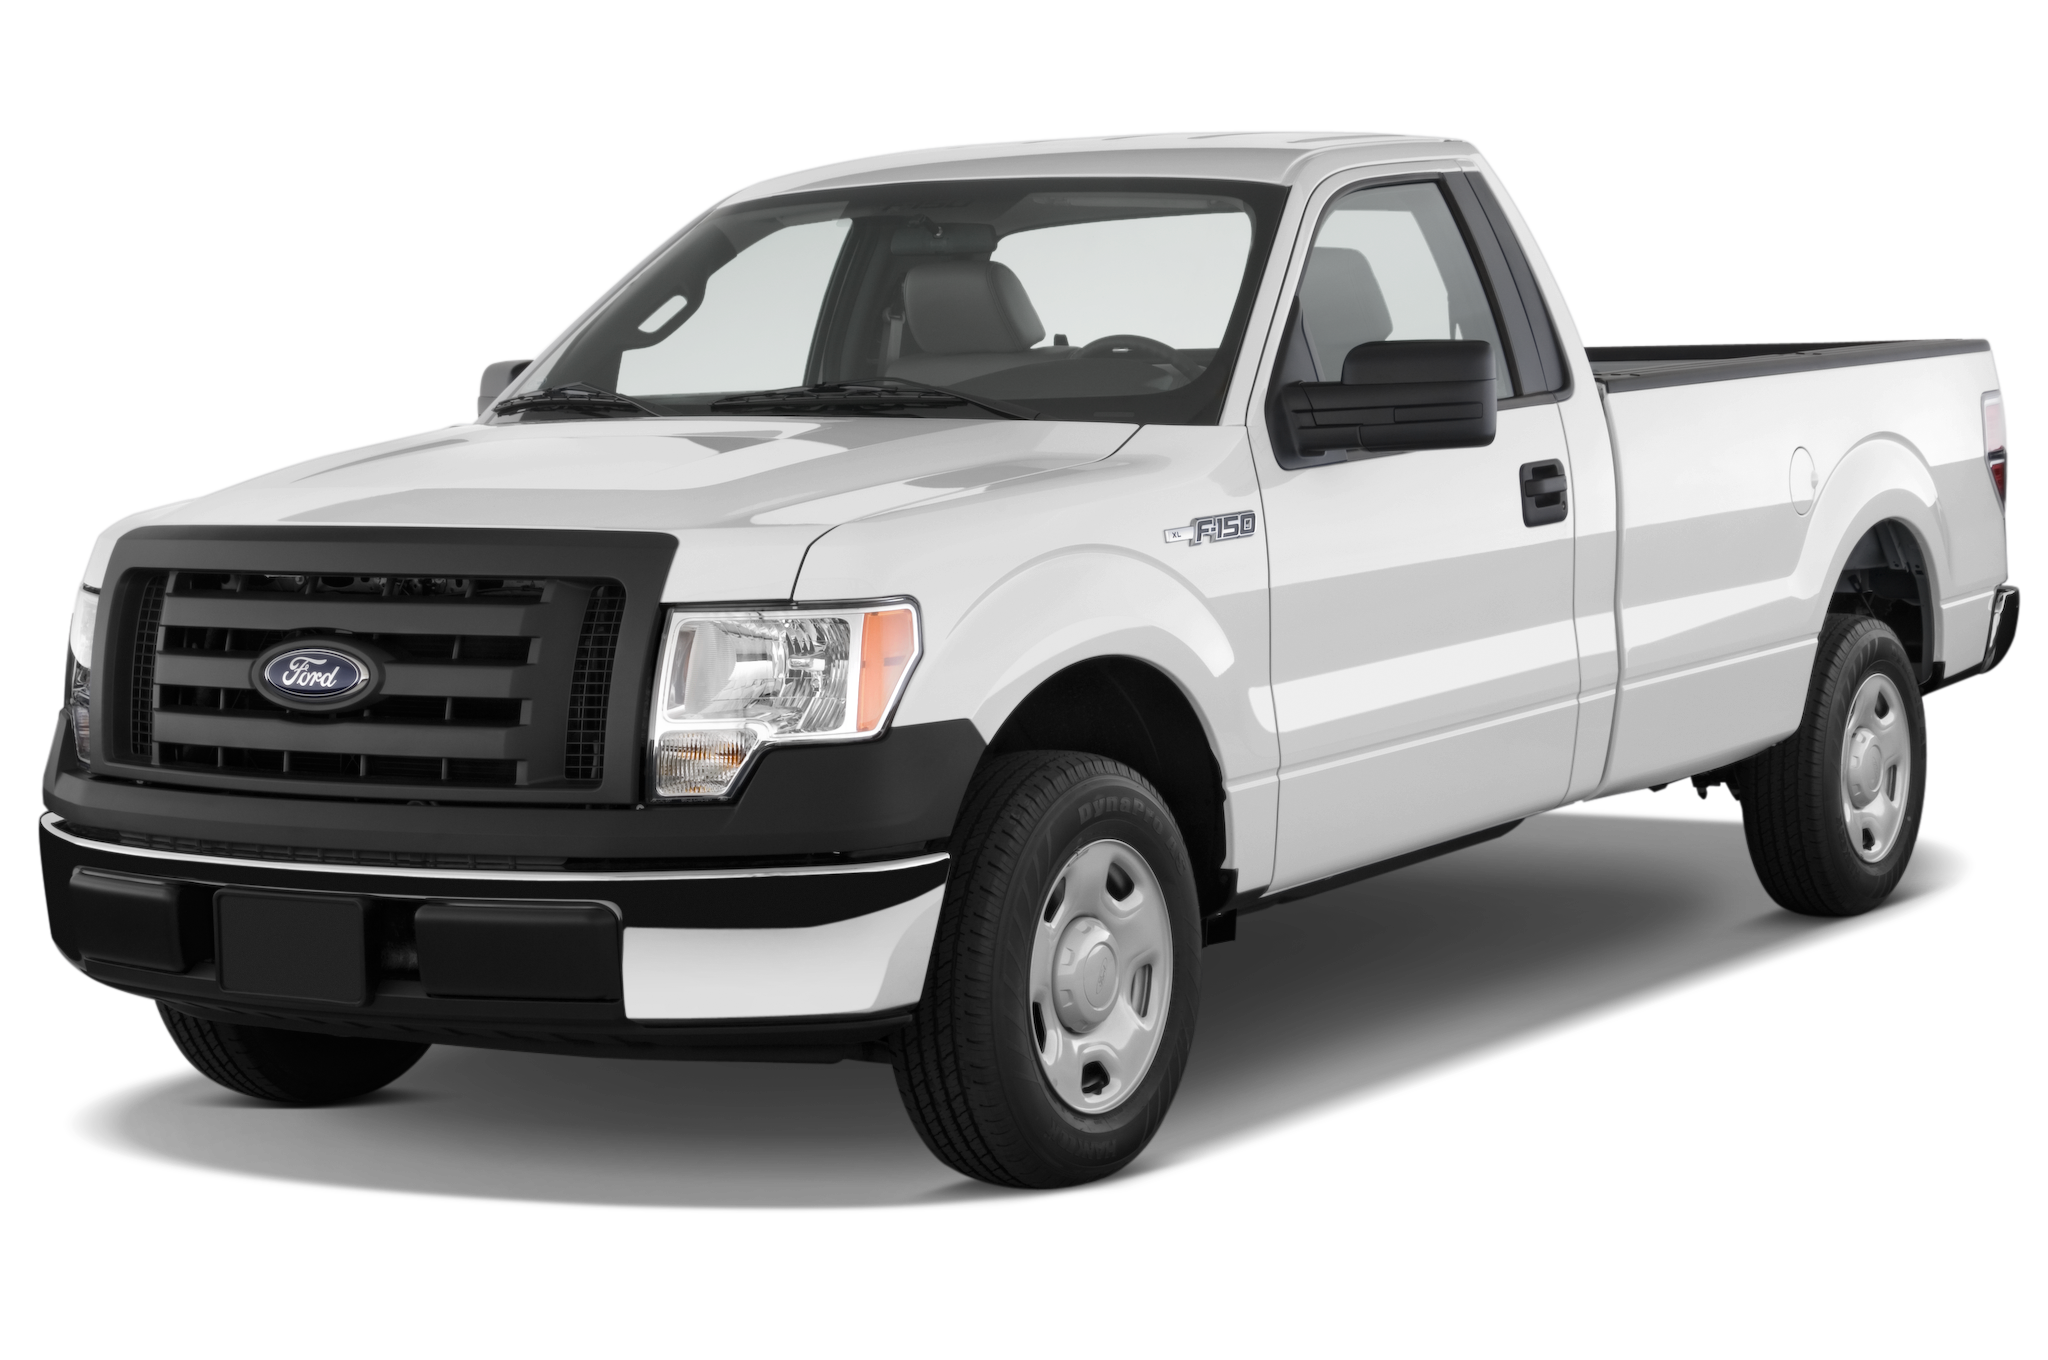 2012 ford f 150 xl regular cab 126 in engine transmision and performance msn autos. Black Bedroom Furniture Sets. Home Design Ideas